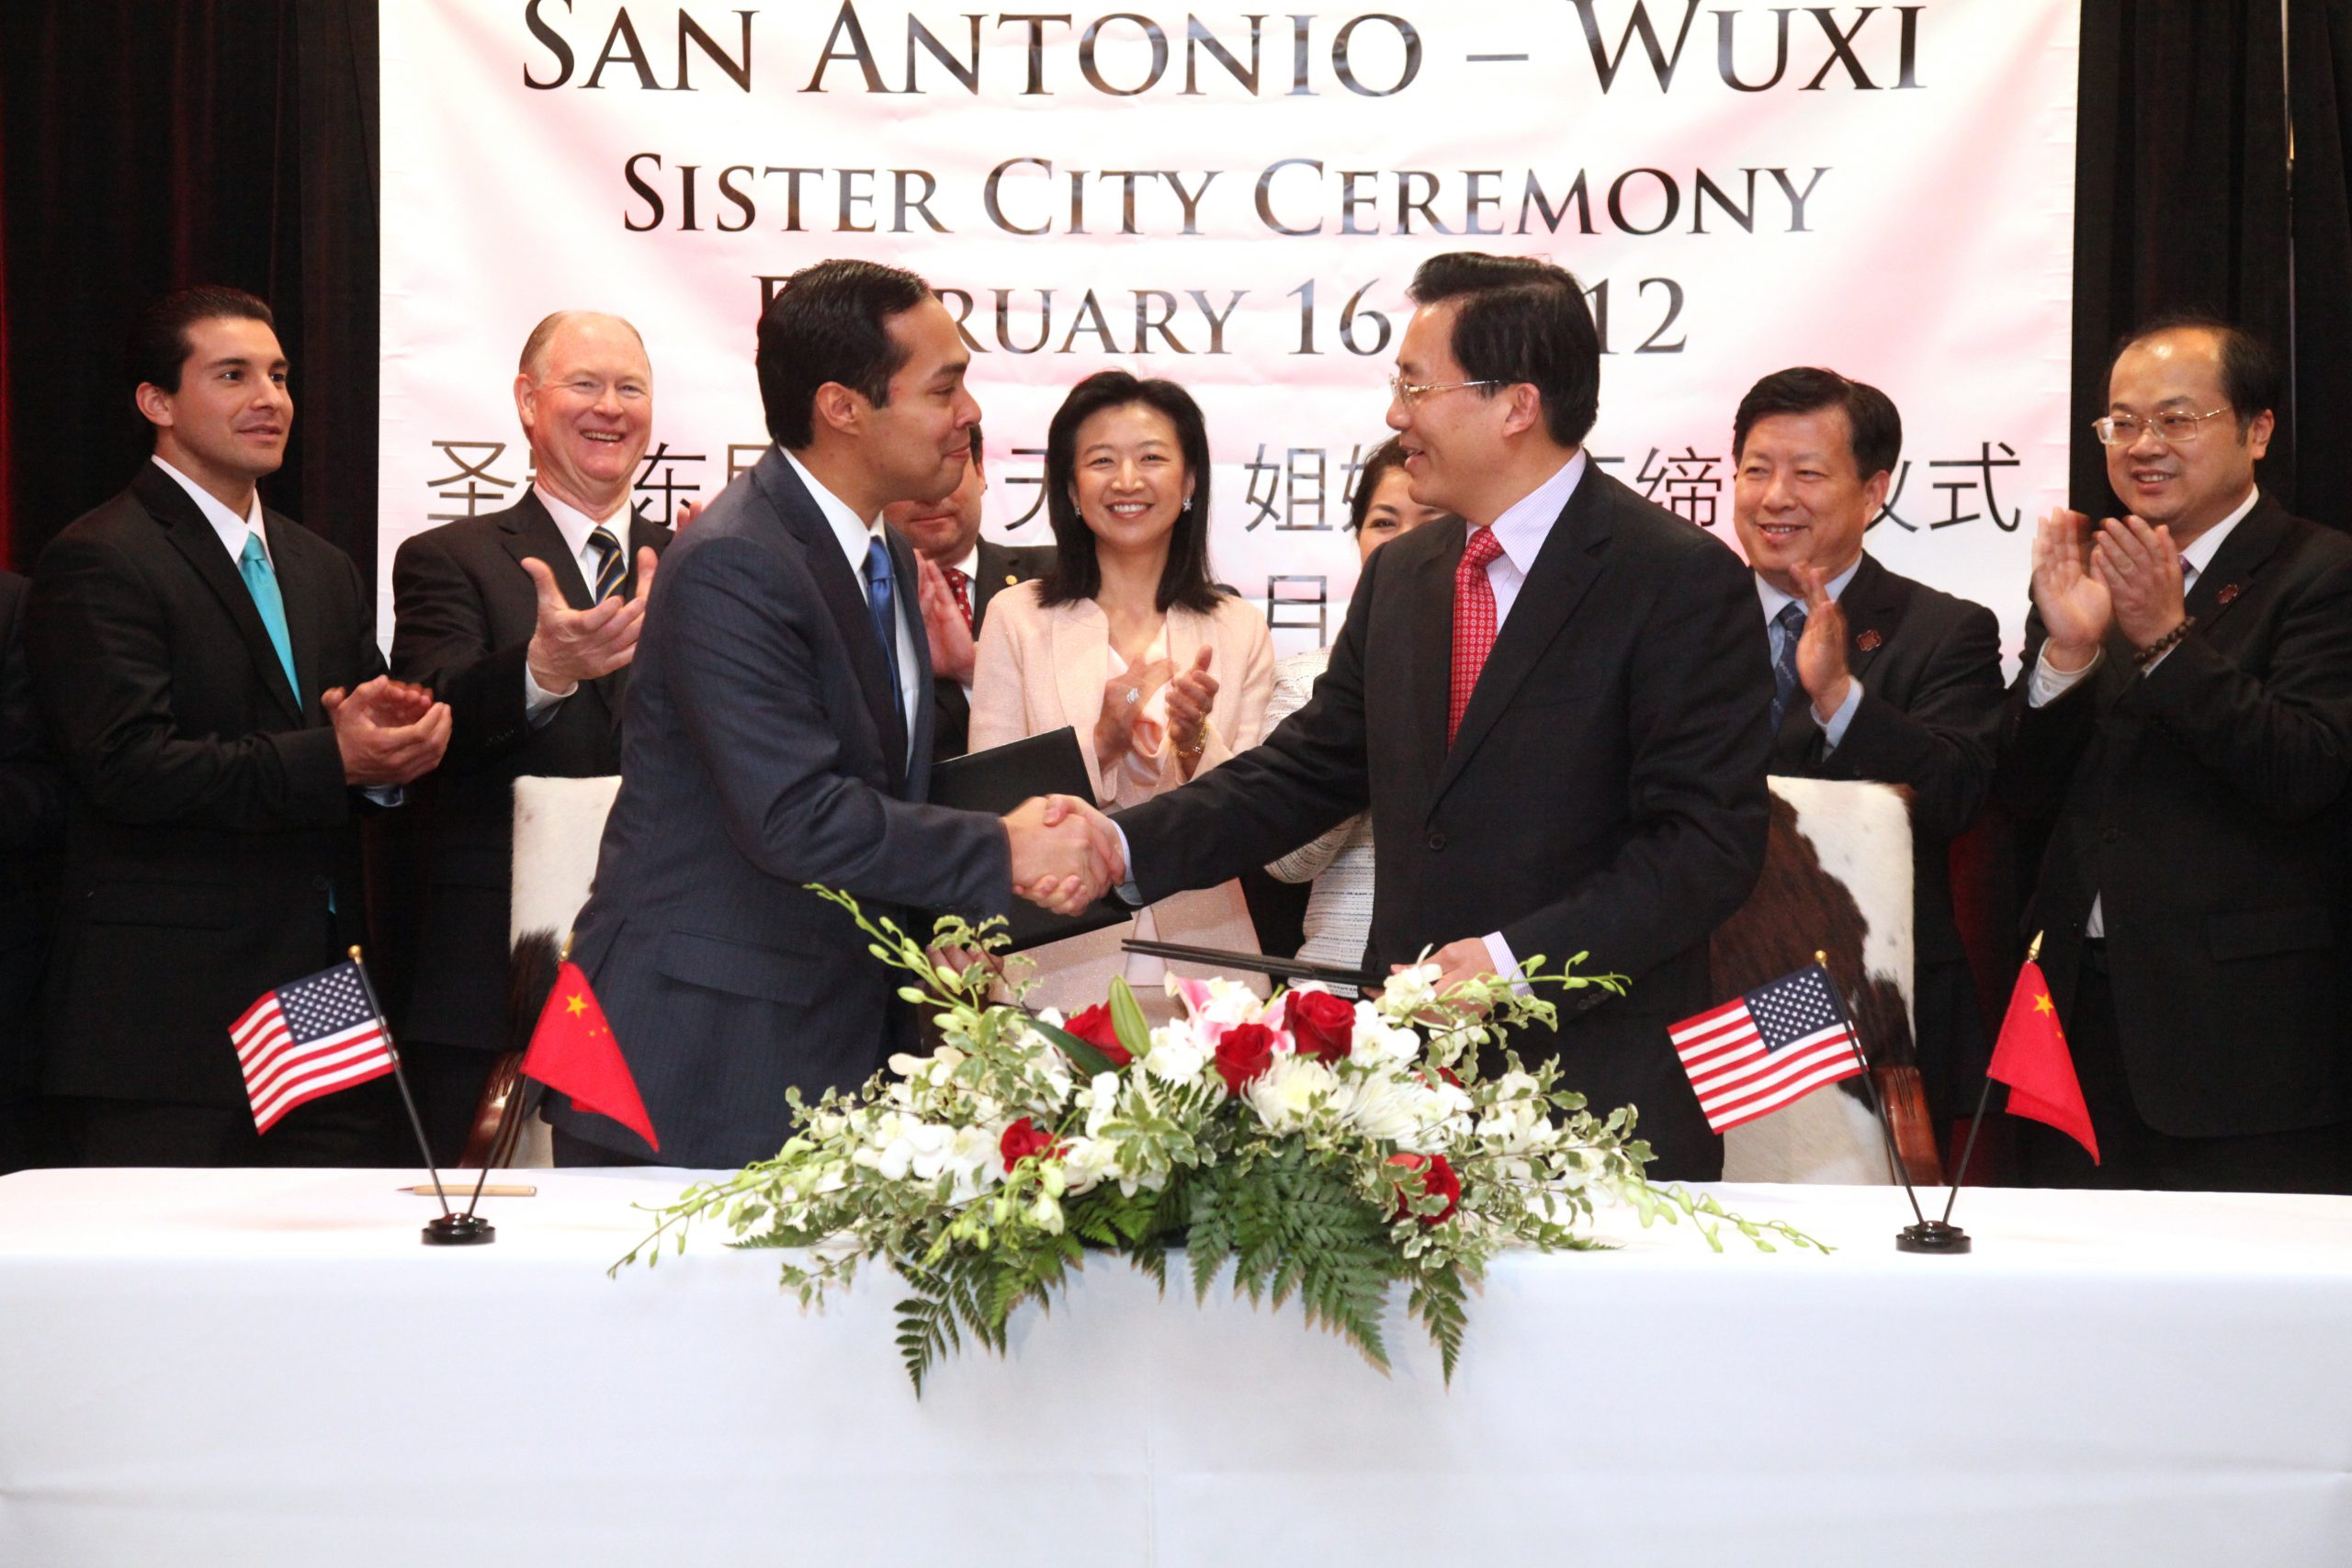 Mayor Julián Castro with Mayor Zhu Kejiang of Wuxi, China after they signed a sister city agreement on Feb 16 2012. Photo courtesy of the City of San Antonio's International Relations Office.